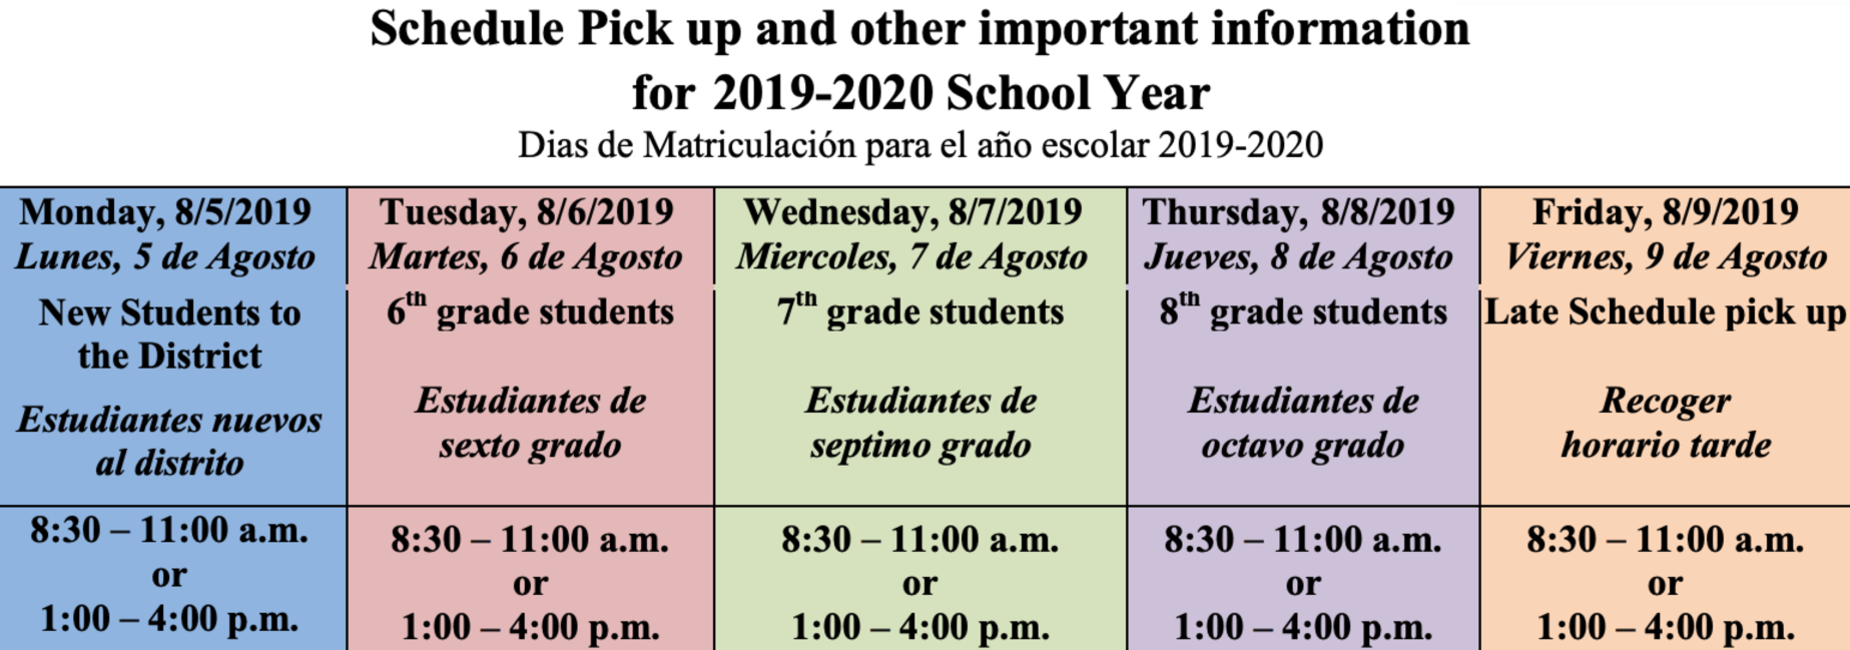 middle school schedule pick up